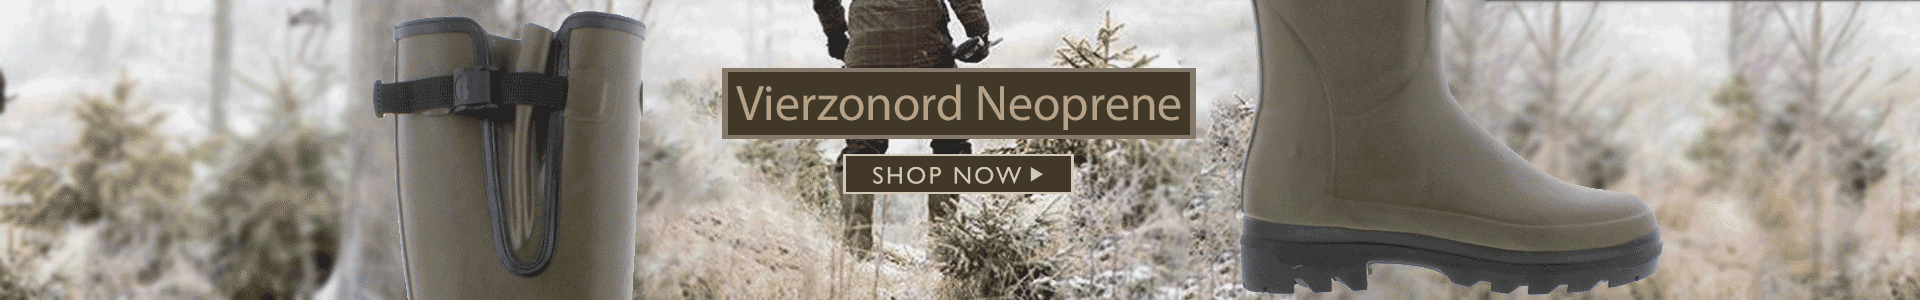 Shop Vierzonord